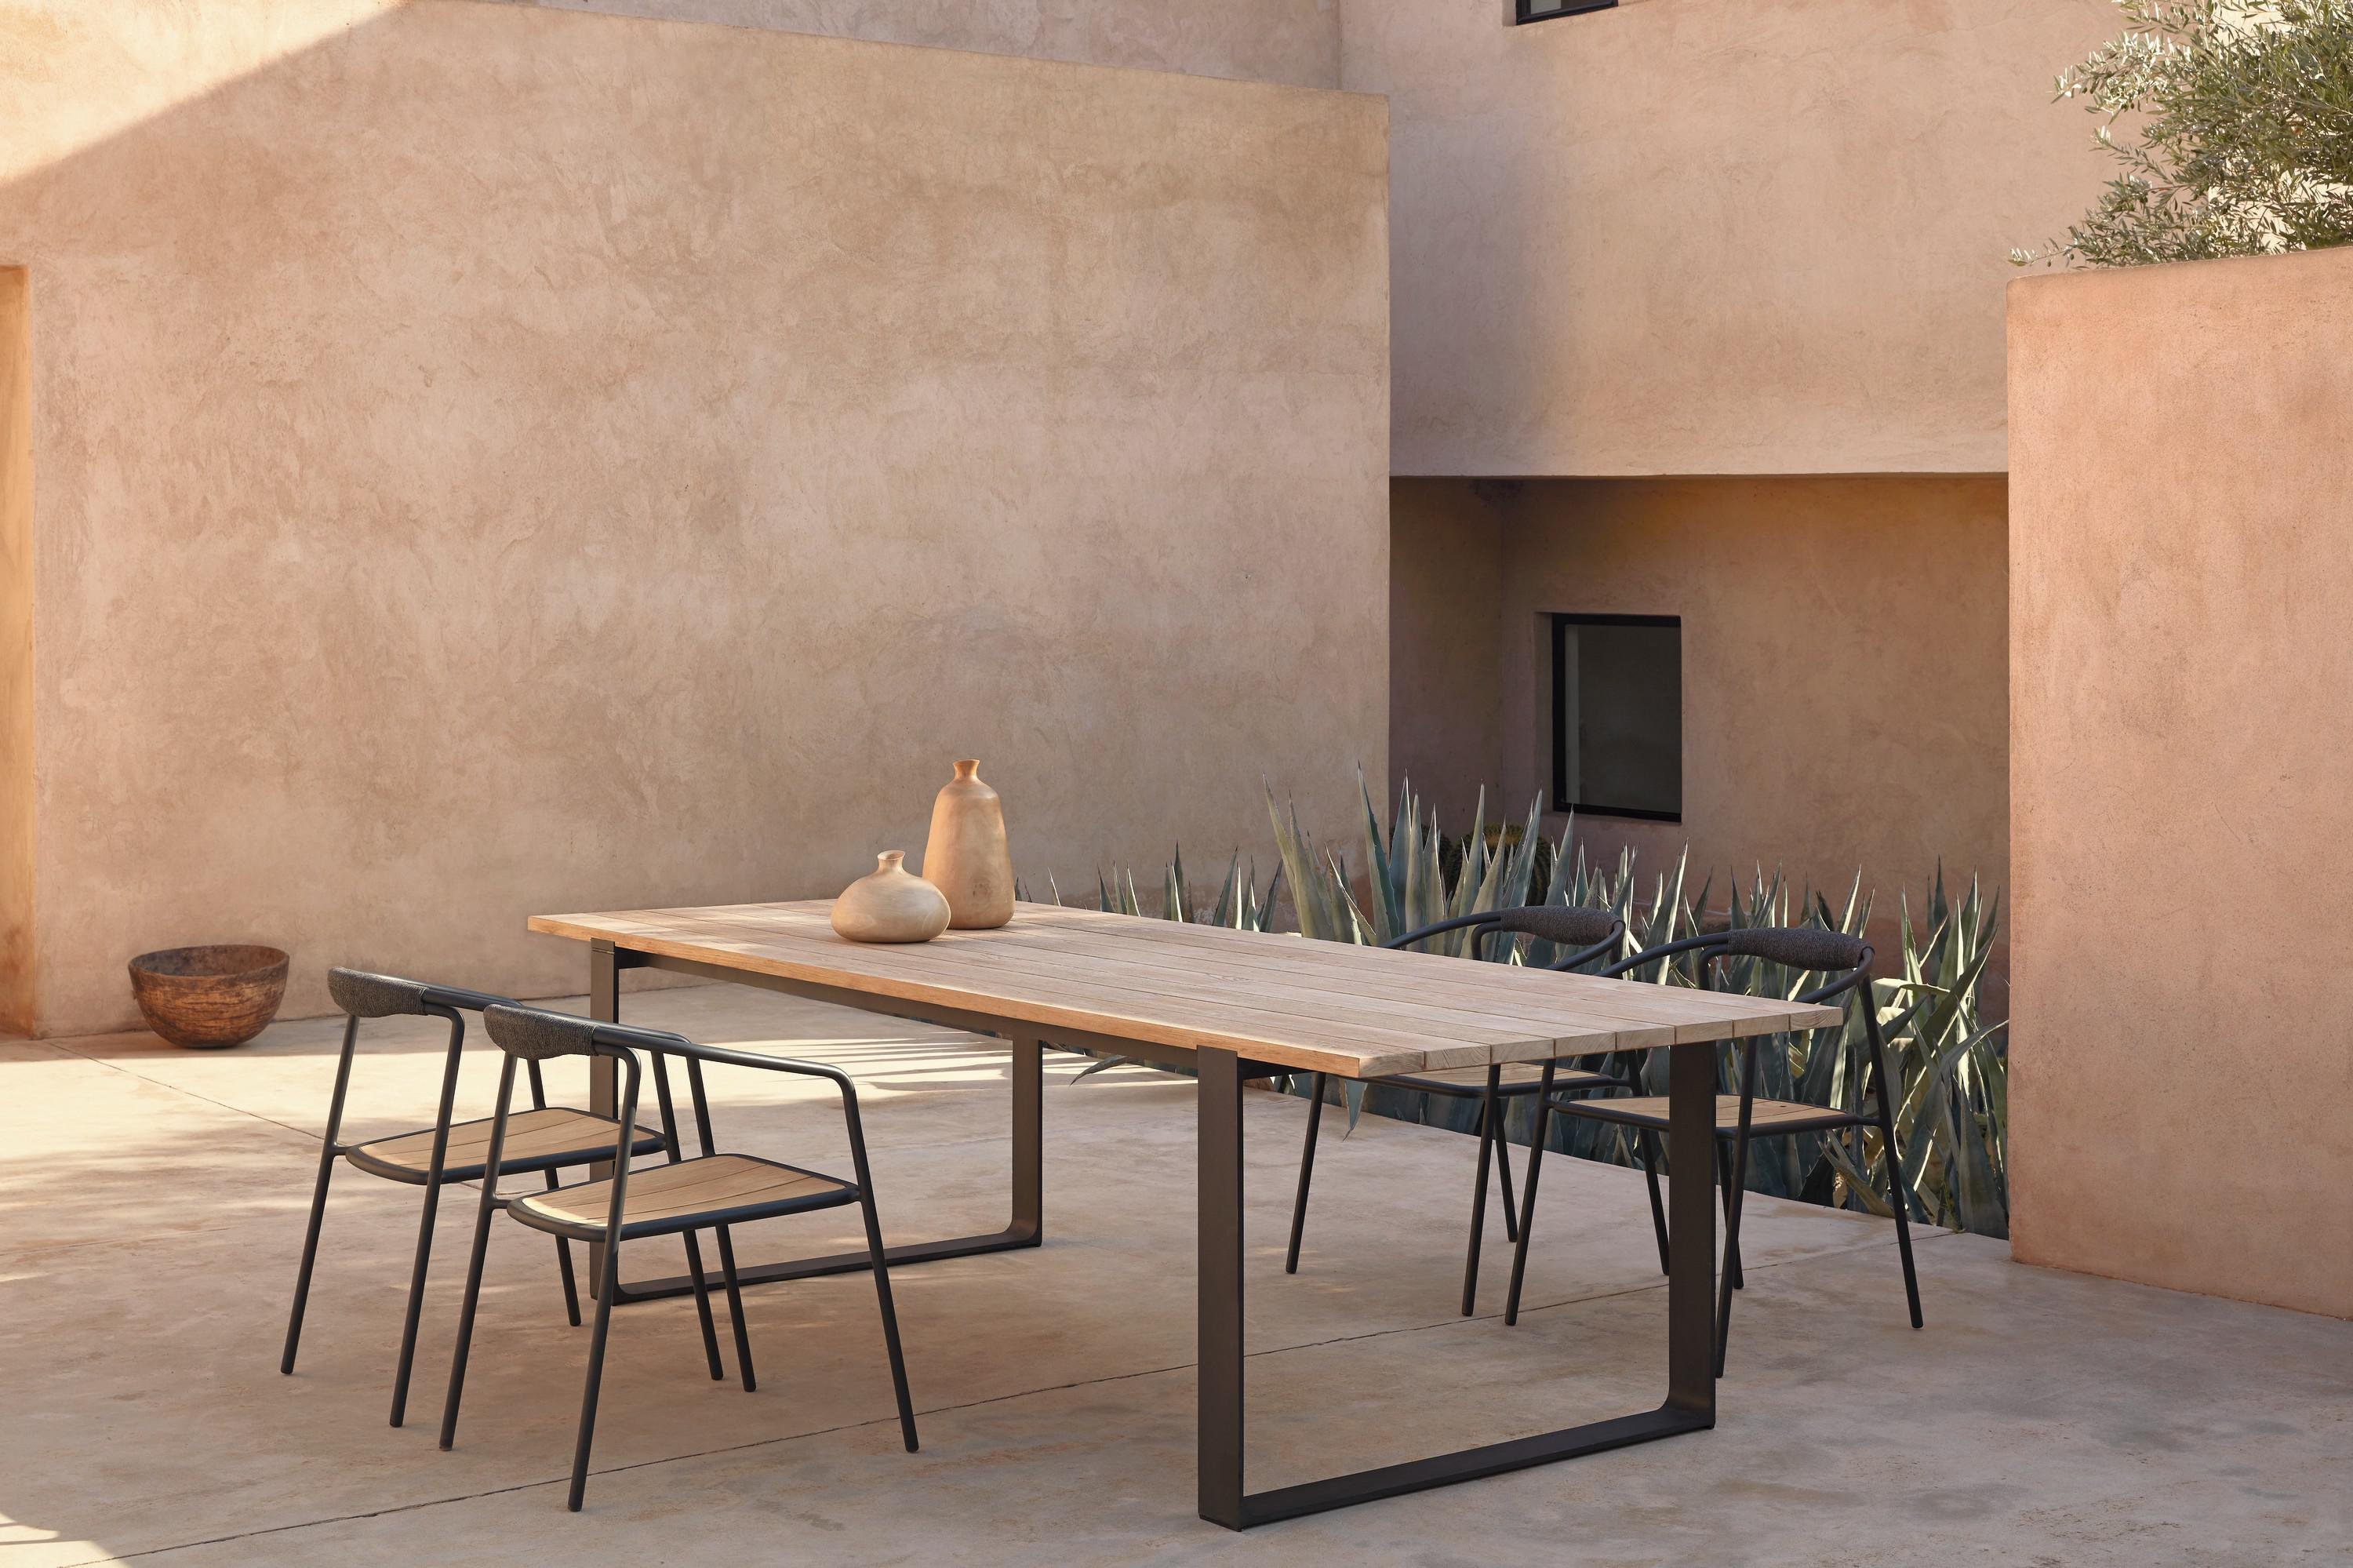 Prato Dining Table from Manutti, designed by Stephane De Winter